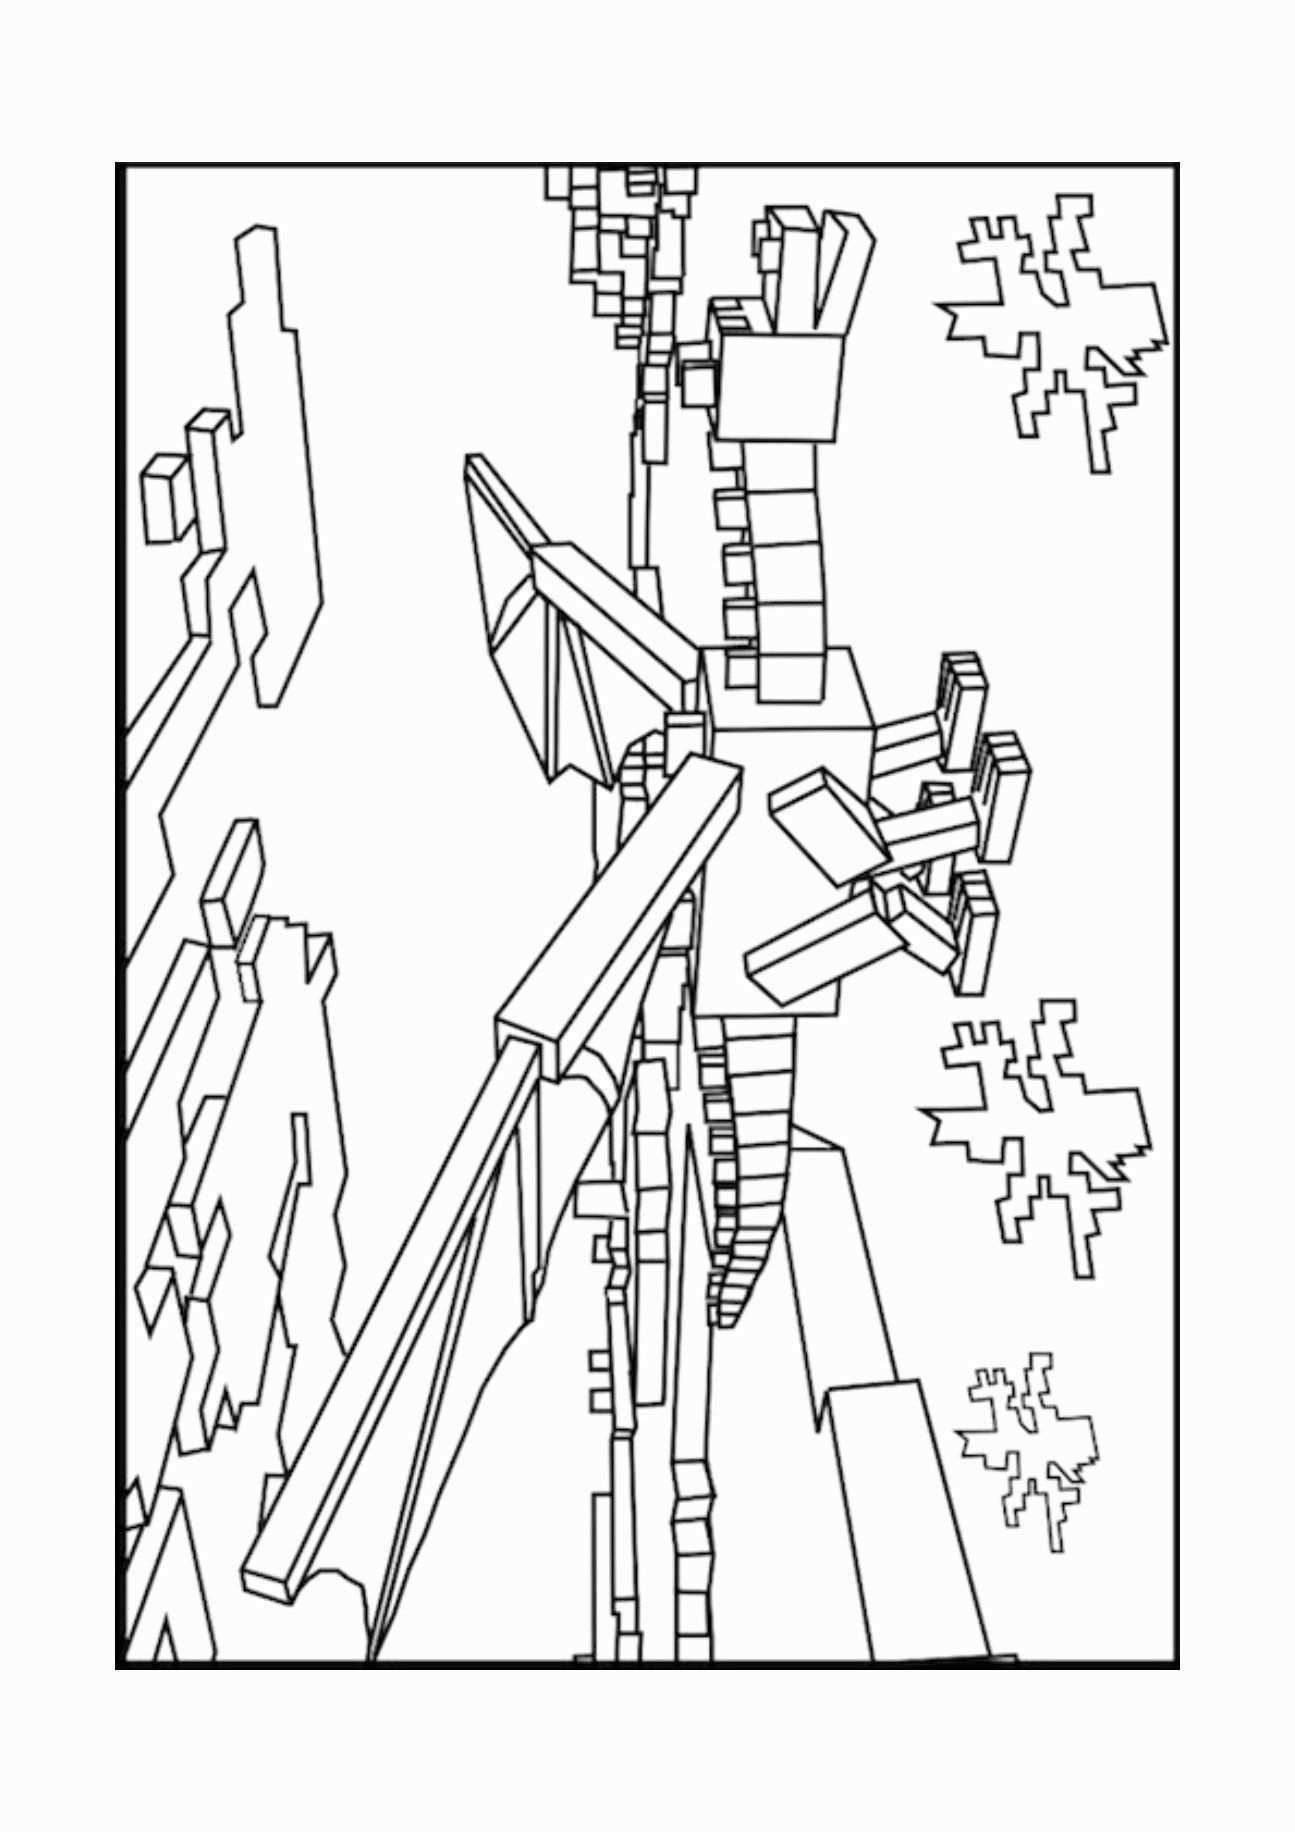 Ender Dragon Coloring Page Luxury 12 Minecraft Lineart Ender